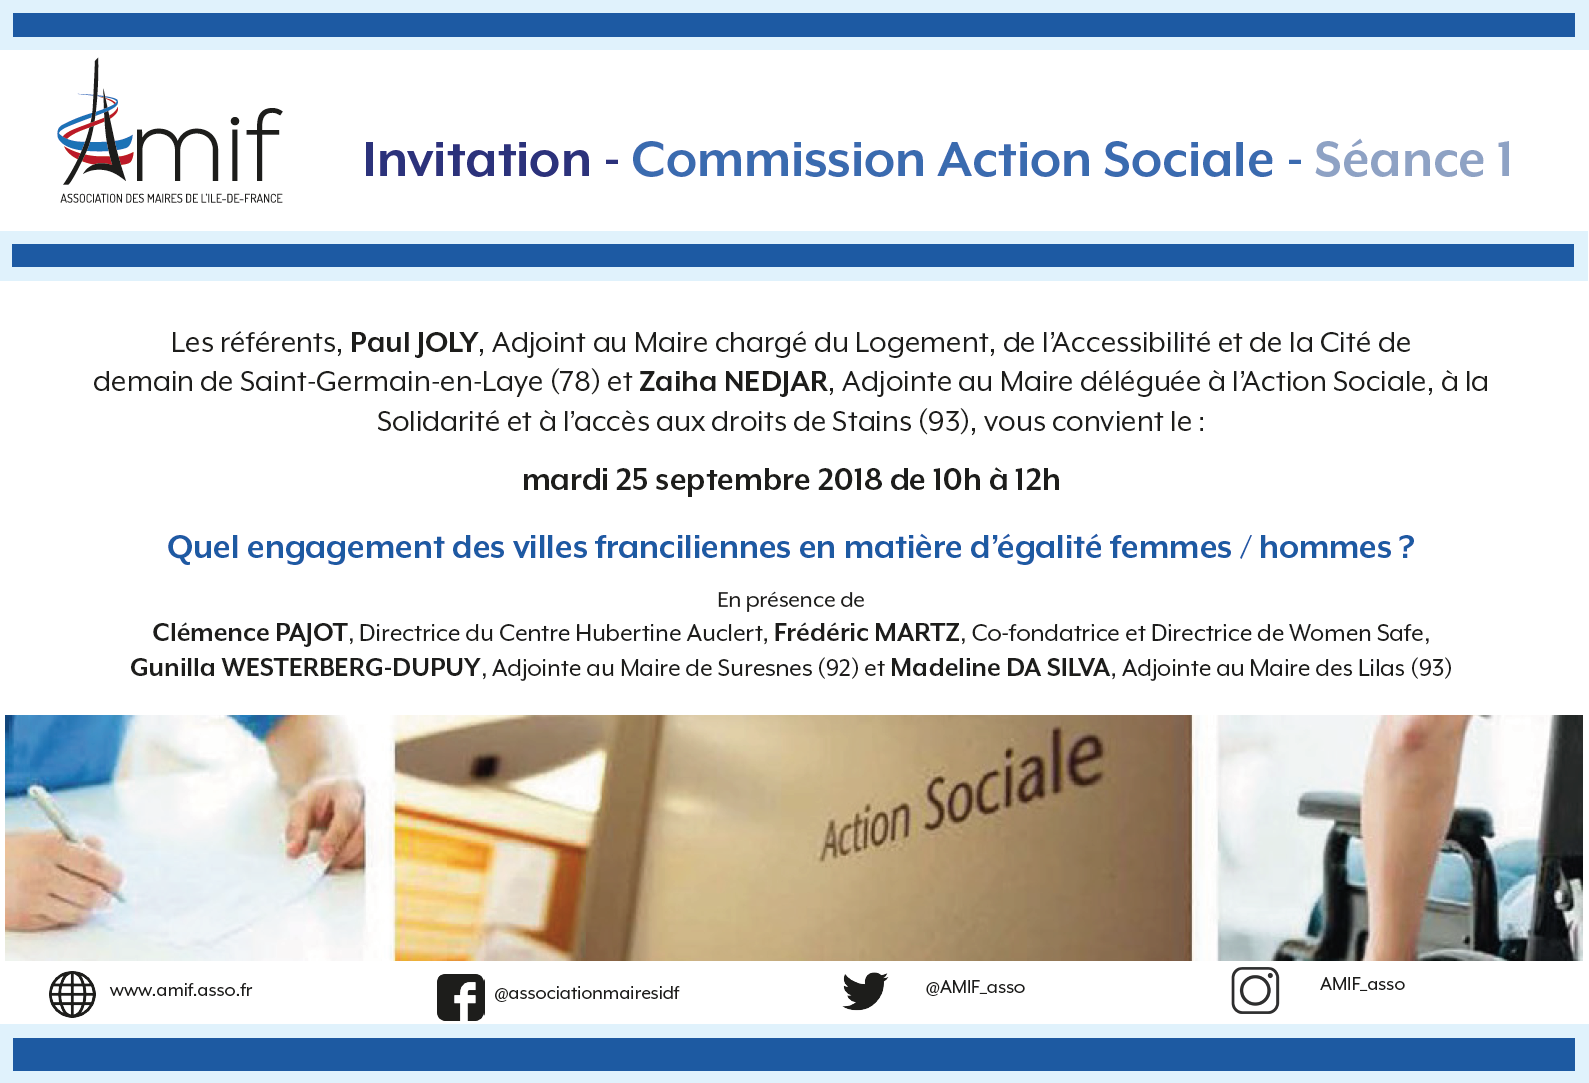 CommissionActionSocialeSeance125septembre 2018v3